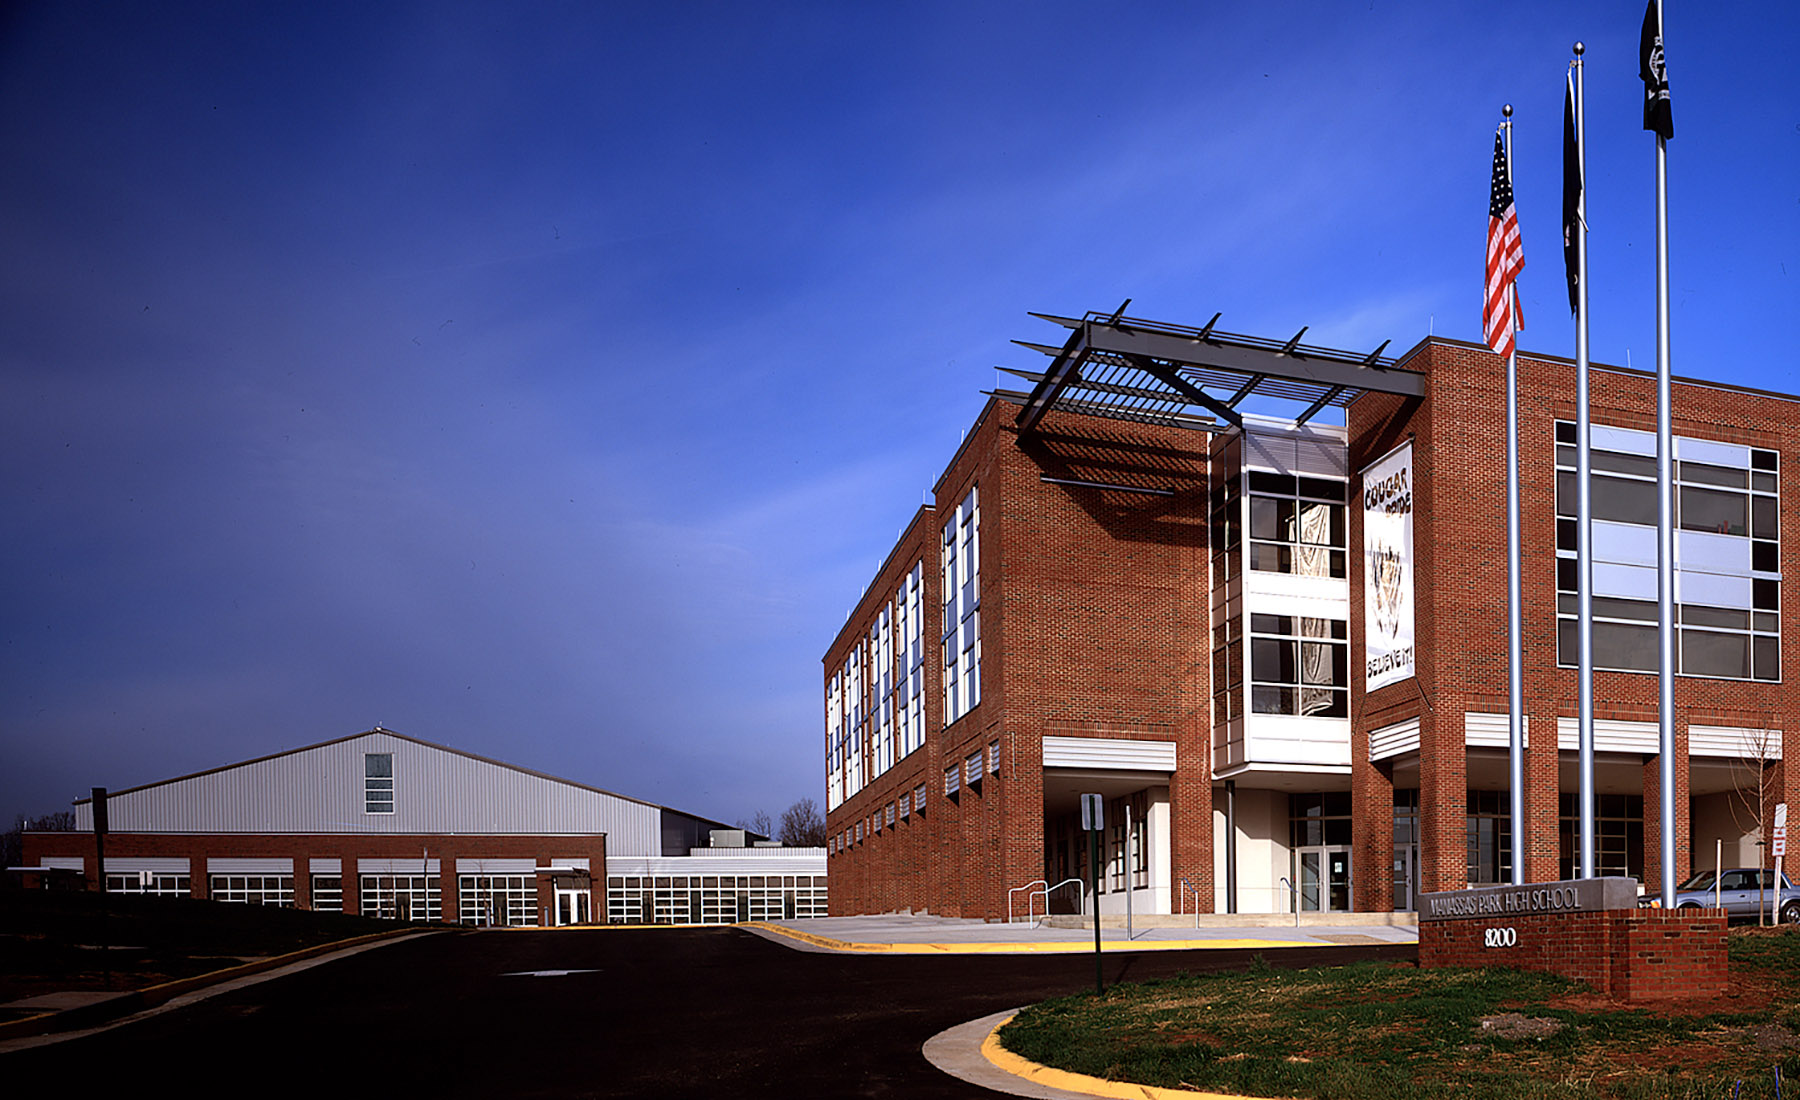 Manassas Park High School represents a comprehensive reinvention of local public education. The school supplements the middle school—to create an academic campus that serves as a civic focal point.